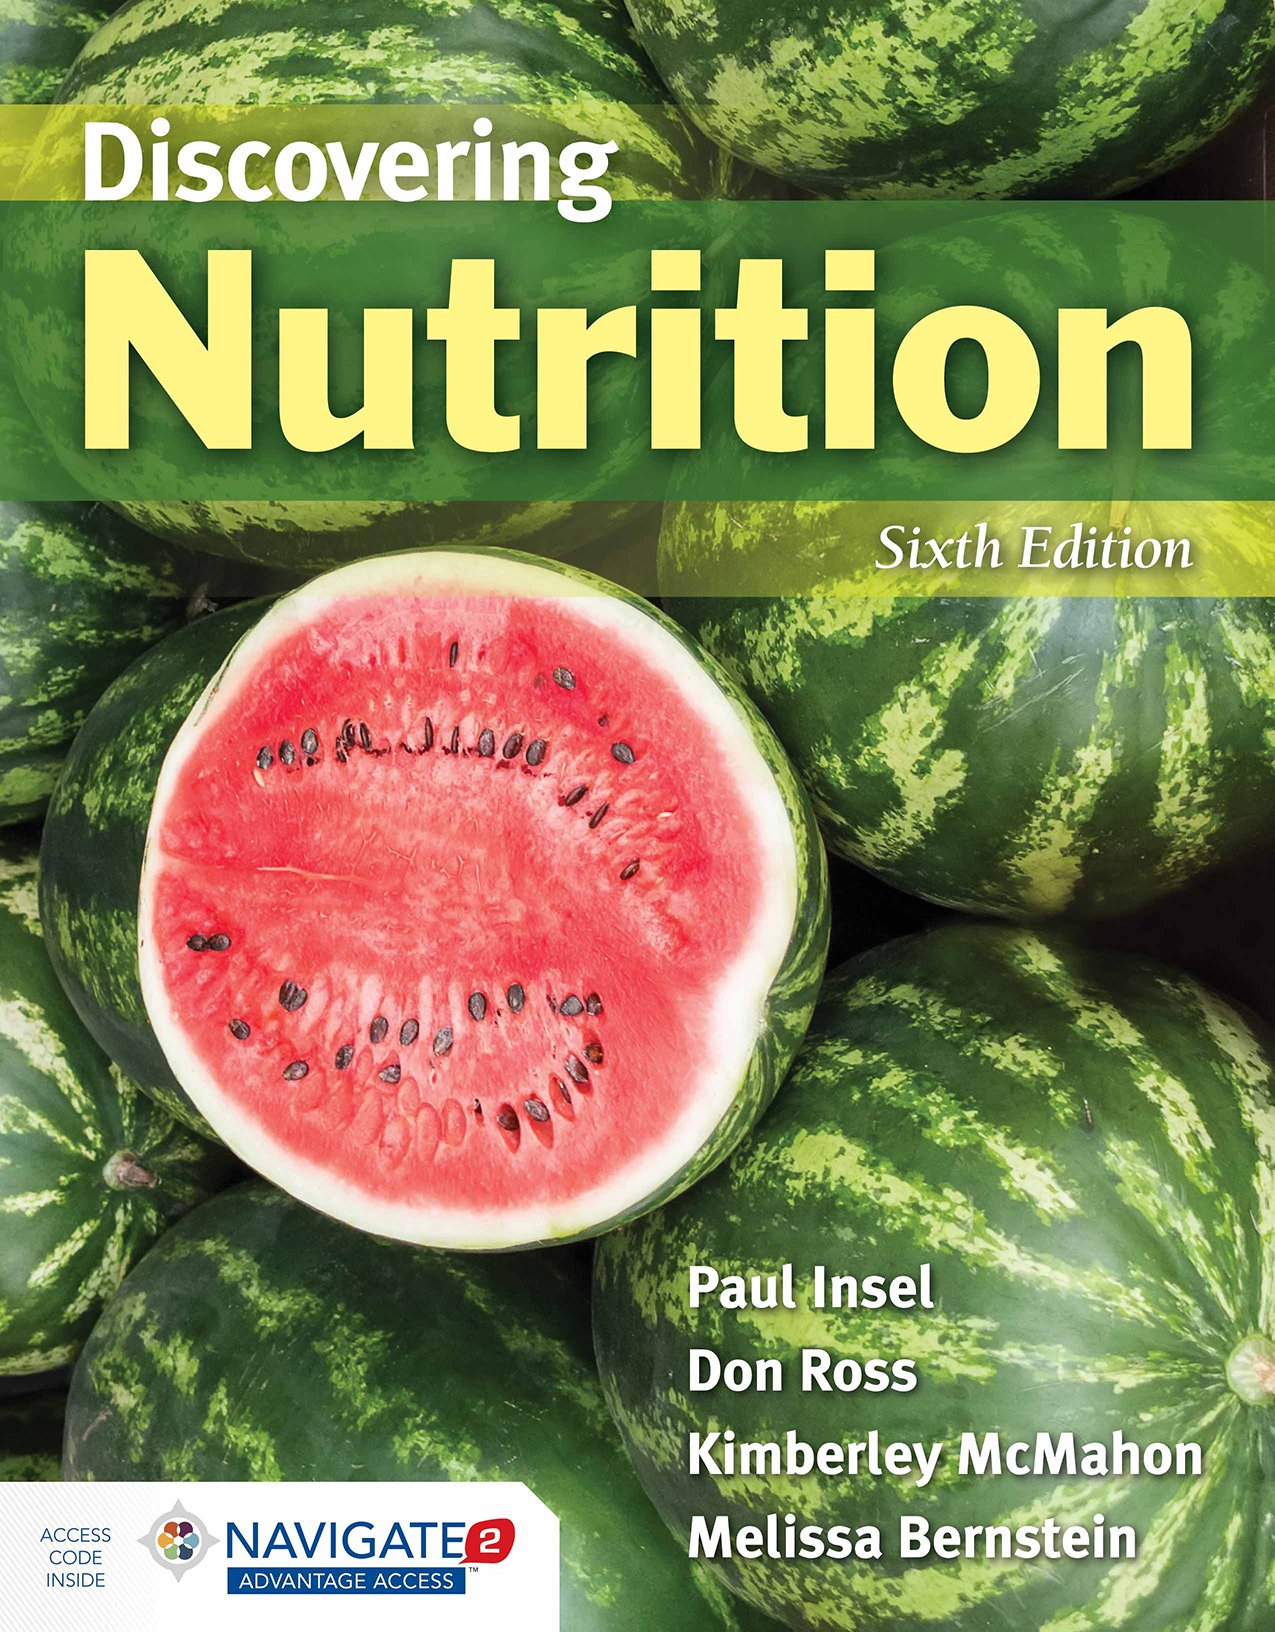 Discovering Nutrition by Jones & Bartlett Learning